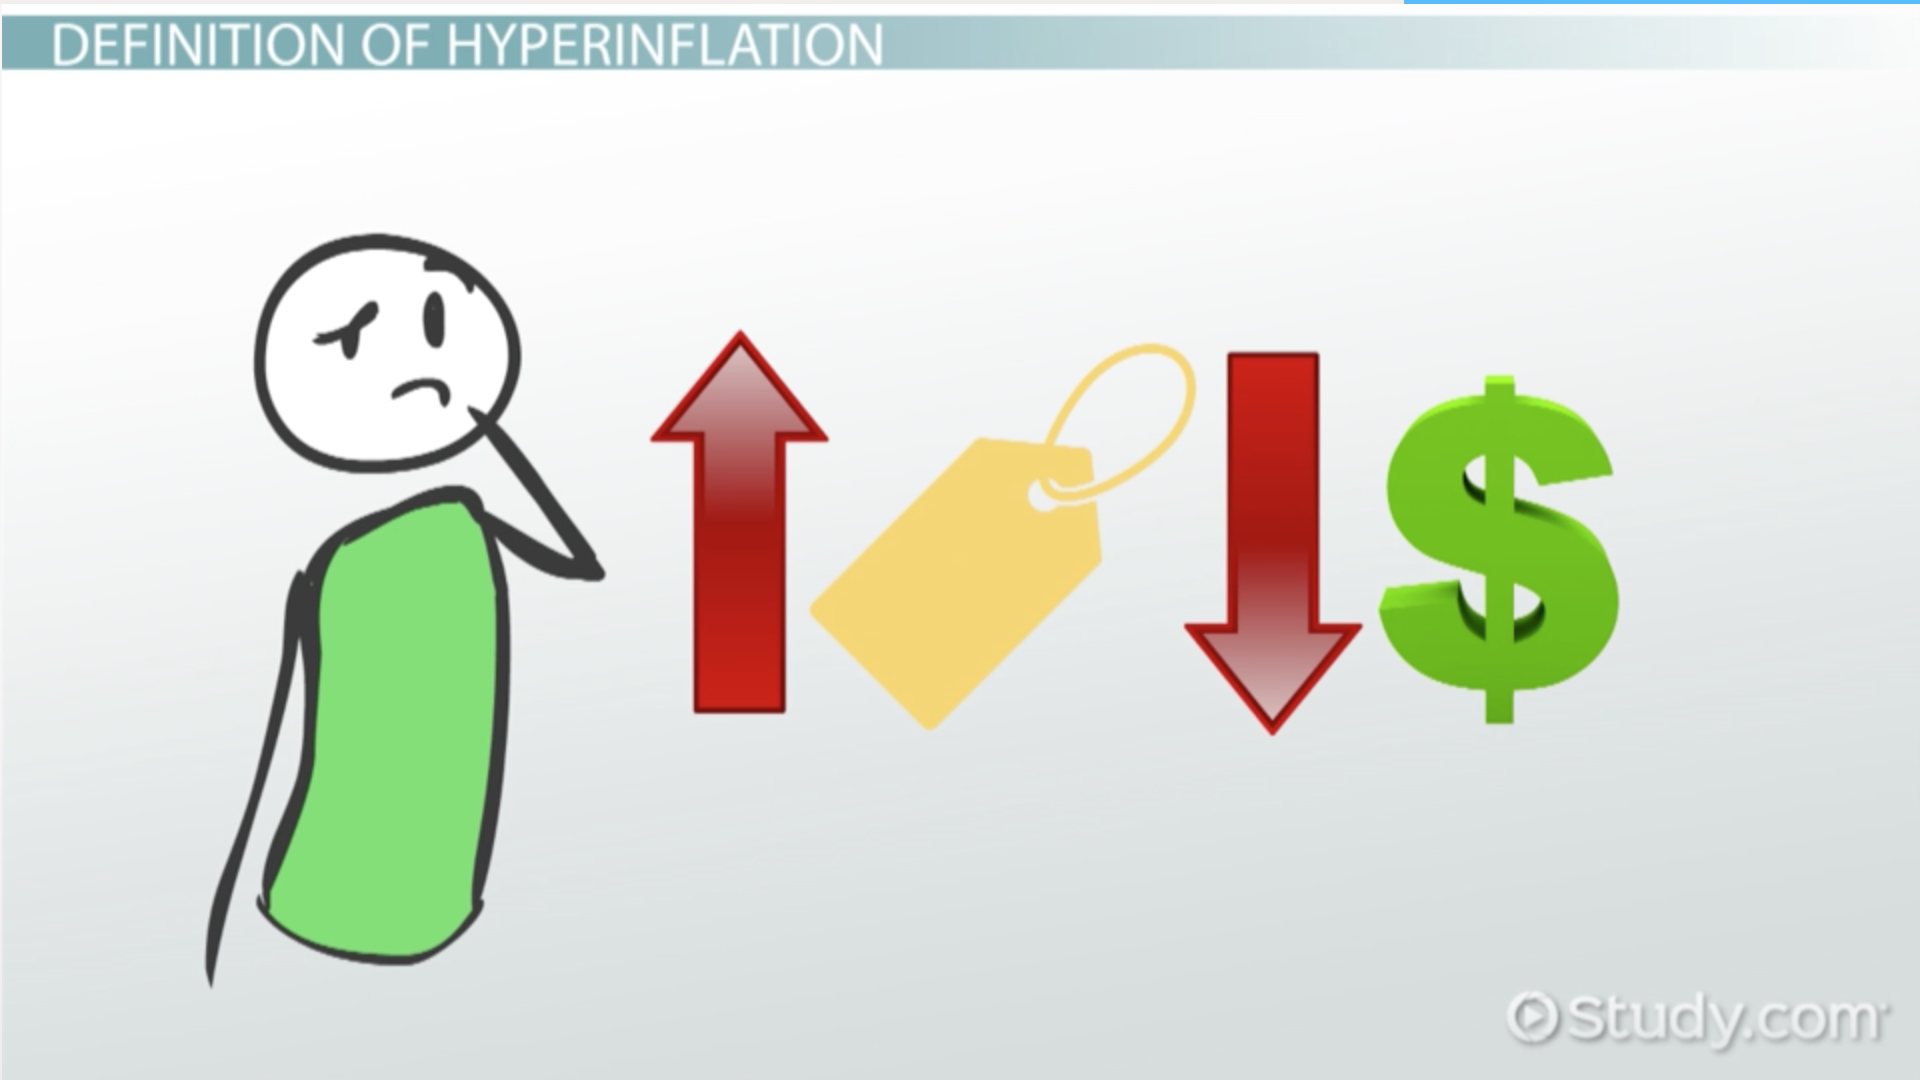 hyperinflation description causes and effects economics essay Uk inflation since 1989 definition - inflation - inflation is a sustained rise in the cost of living and average price level causes inflation - inflation is caused by excess demand in the economy, a rise in costs of production, rapid growth in the money supply.